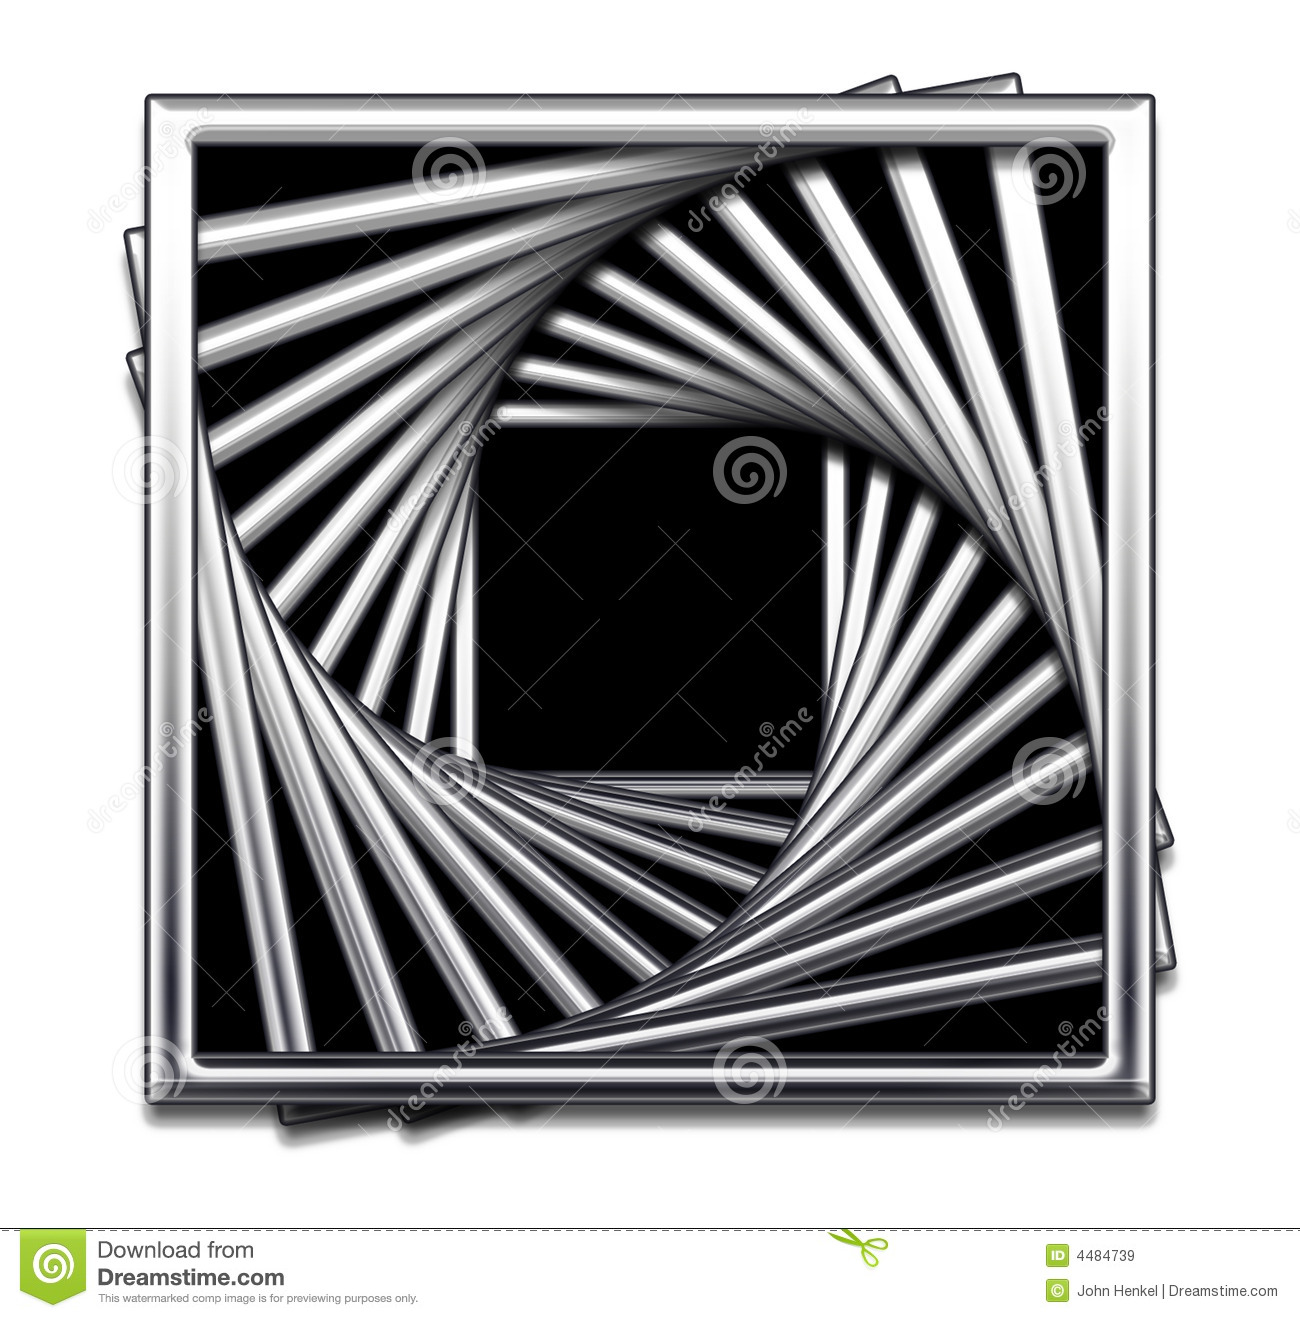 Metallic Square Abstract Design in Black and White